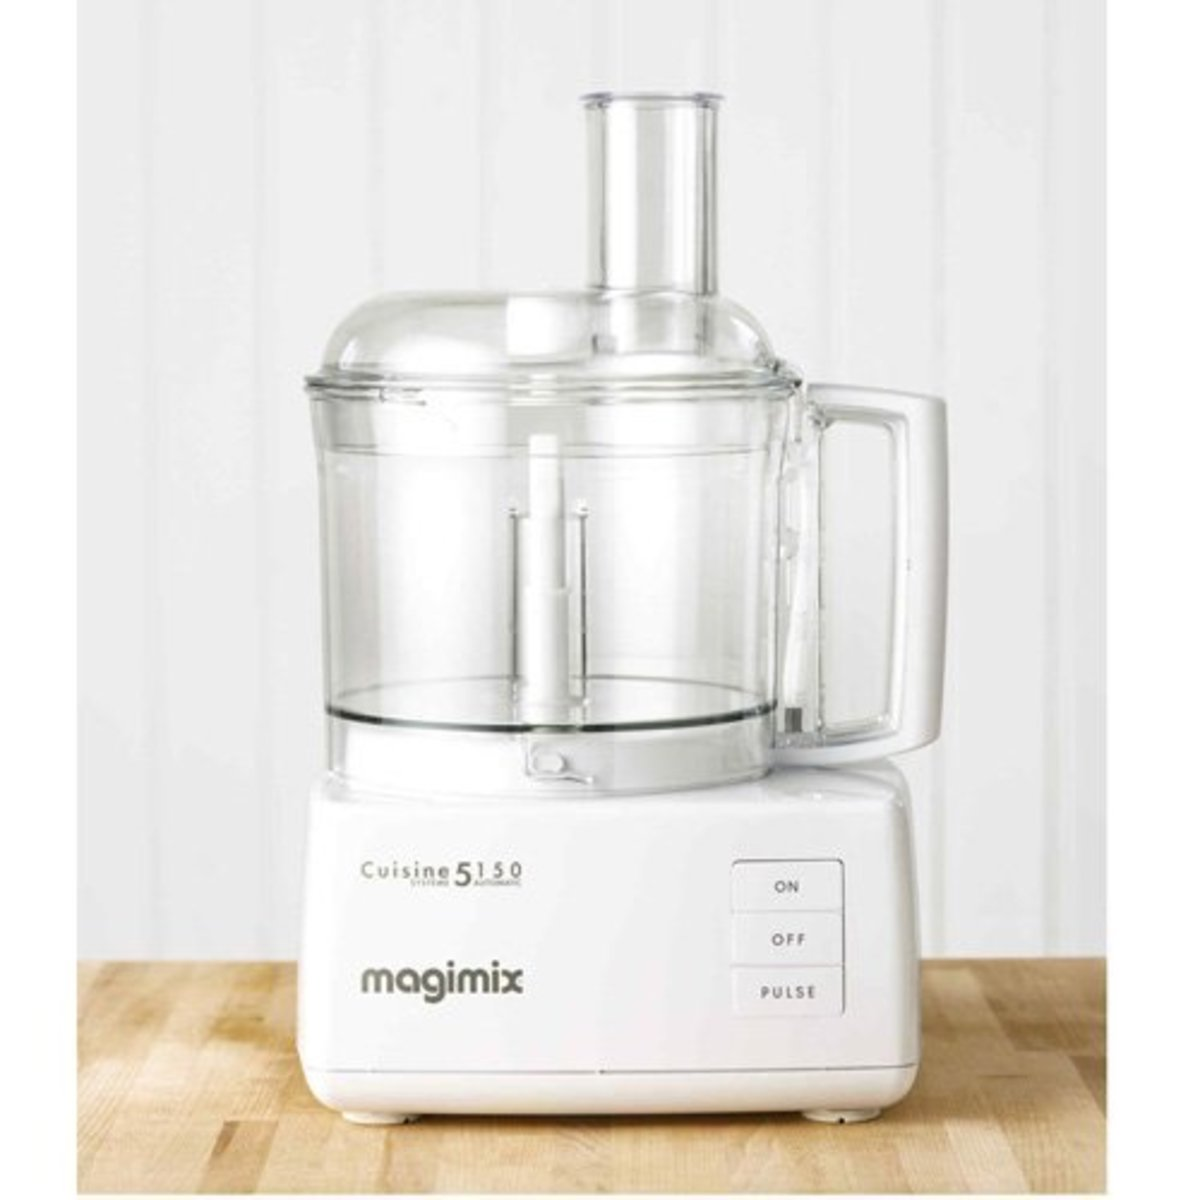 Magimix Cuisine Systeme 5150 food processor in white